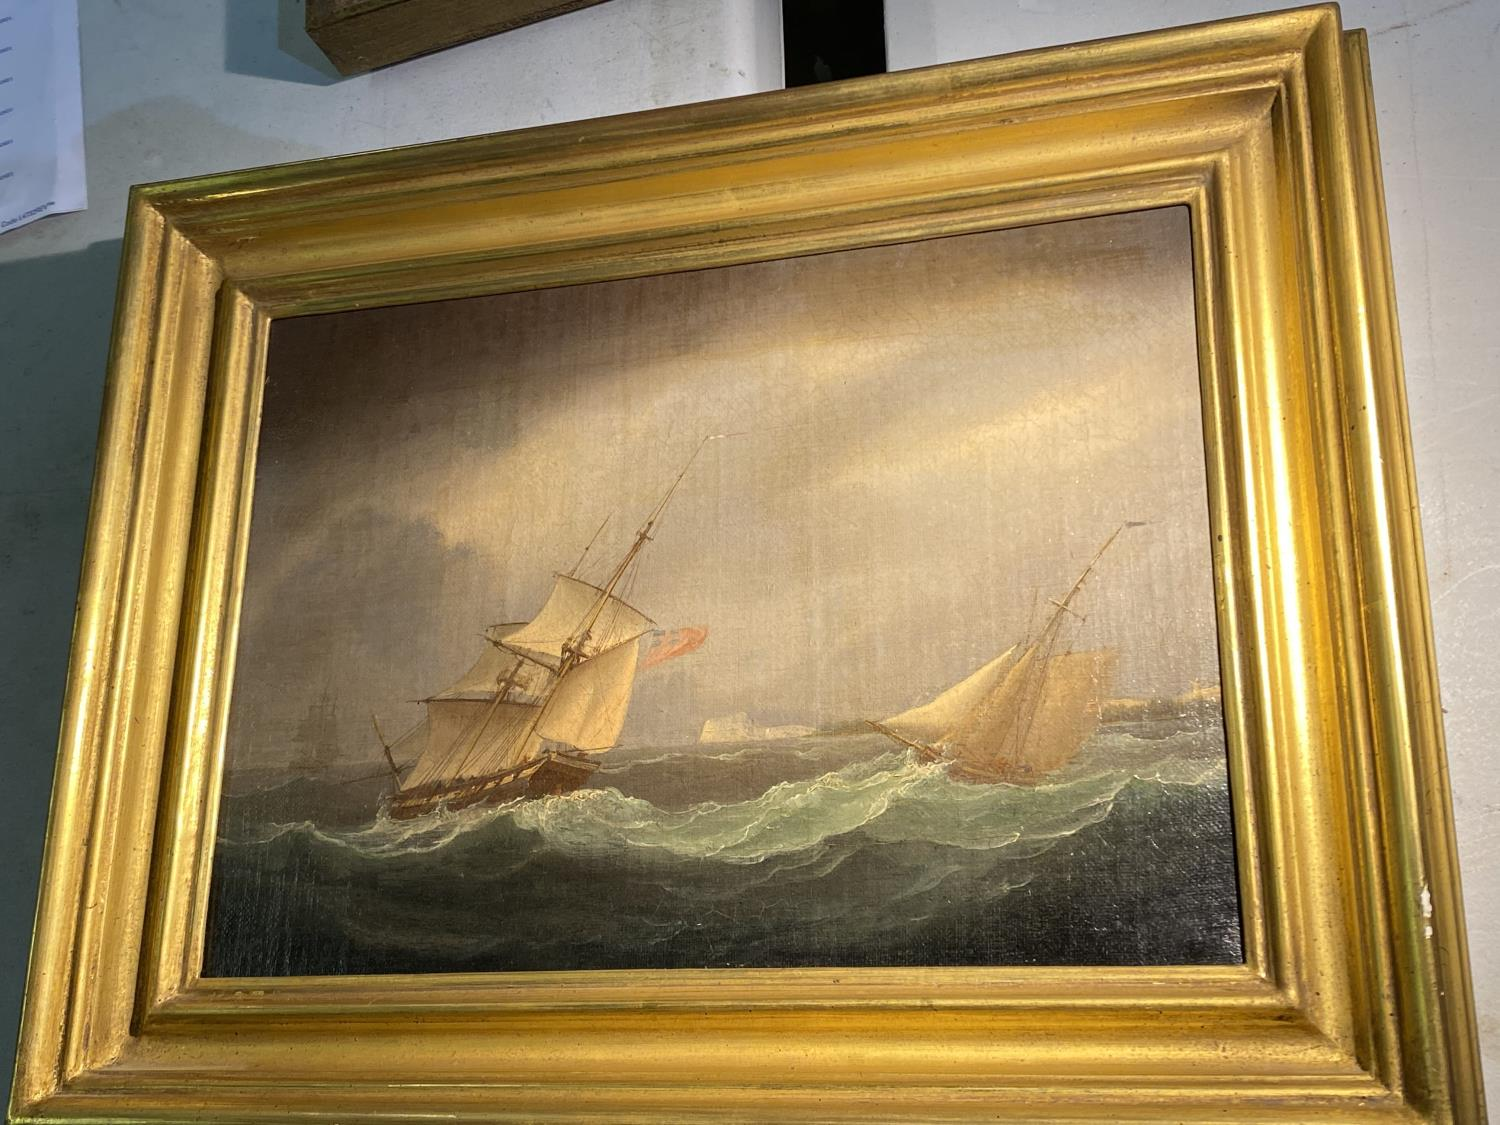 C19th, oil on canvas, 2 sailing ships in a stormy sea, windmill in distance, indistinctly signed - Image 3 of 5